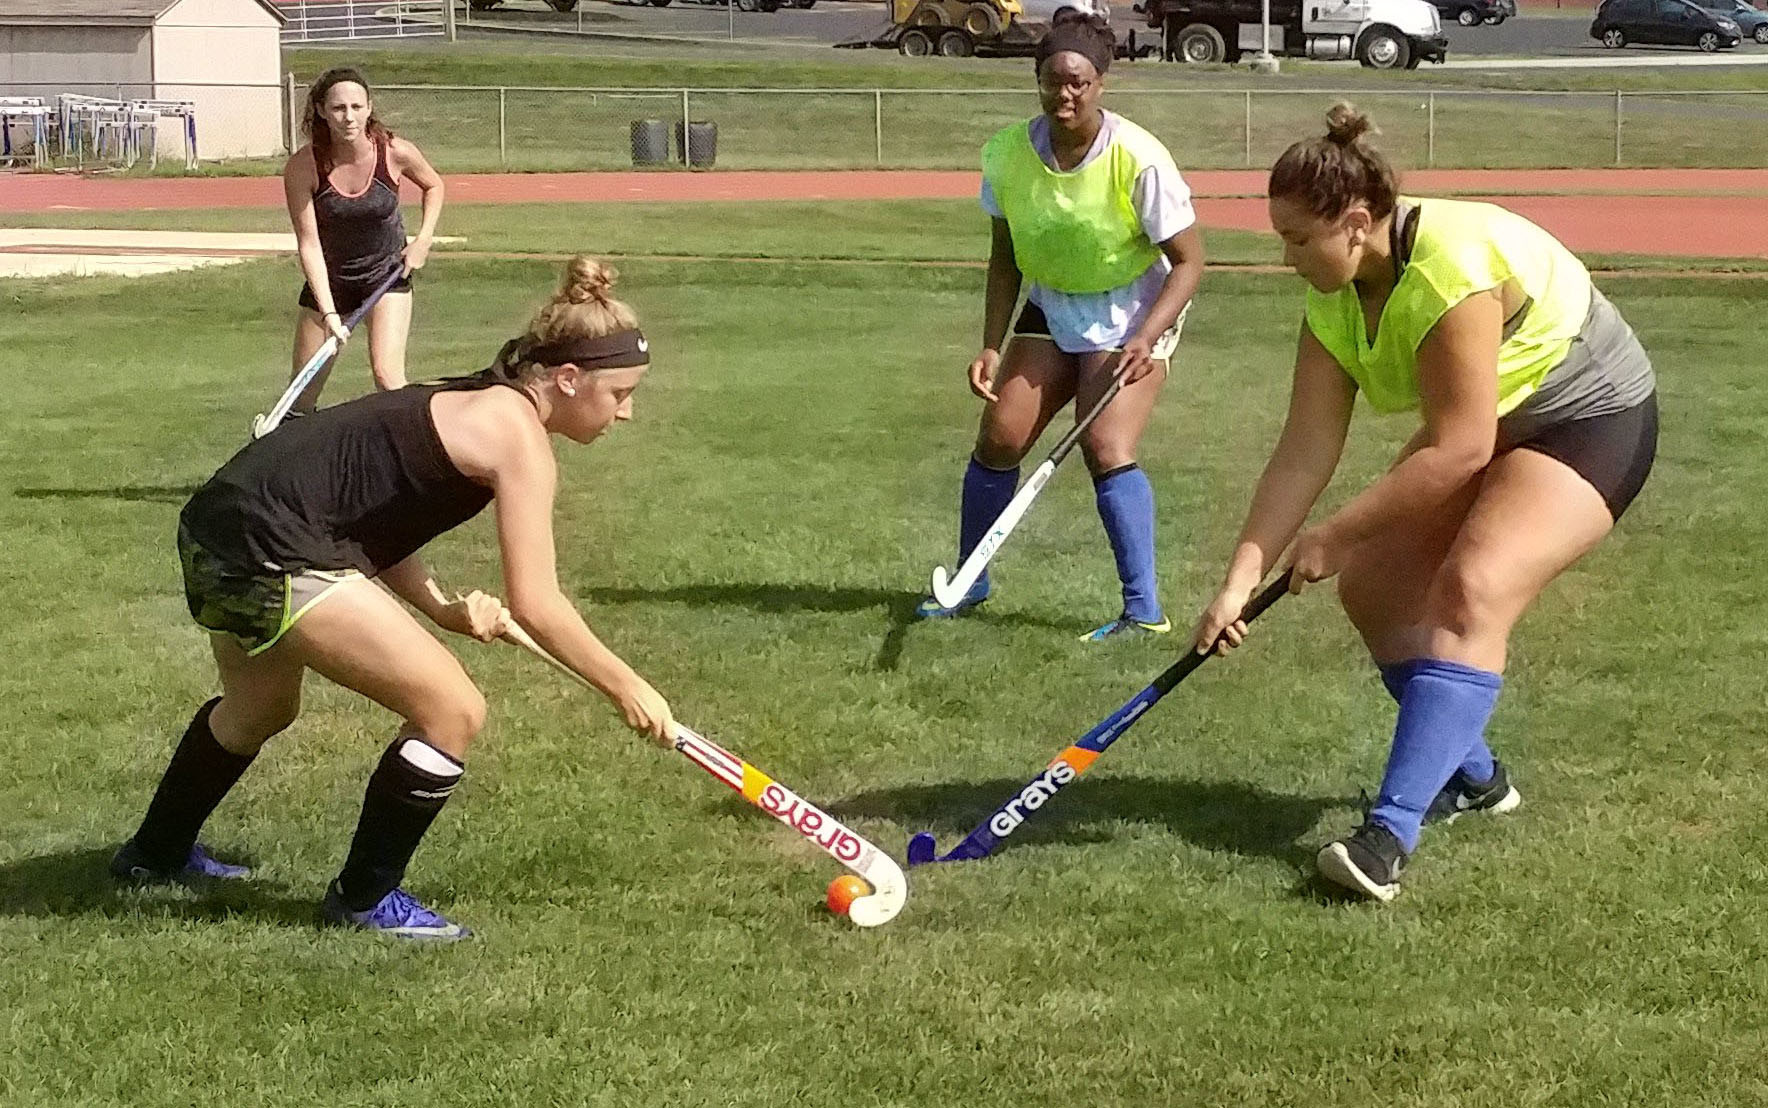 Paige Burger and Caroline Gill battle over the ball during field hockey practice on the morning of Aug. 25 while Kiera Guckavan and Deja Washington watch to see who gets the advantage.